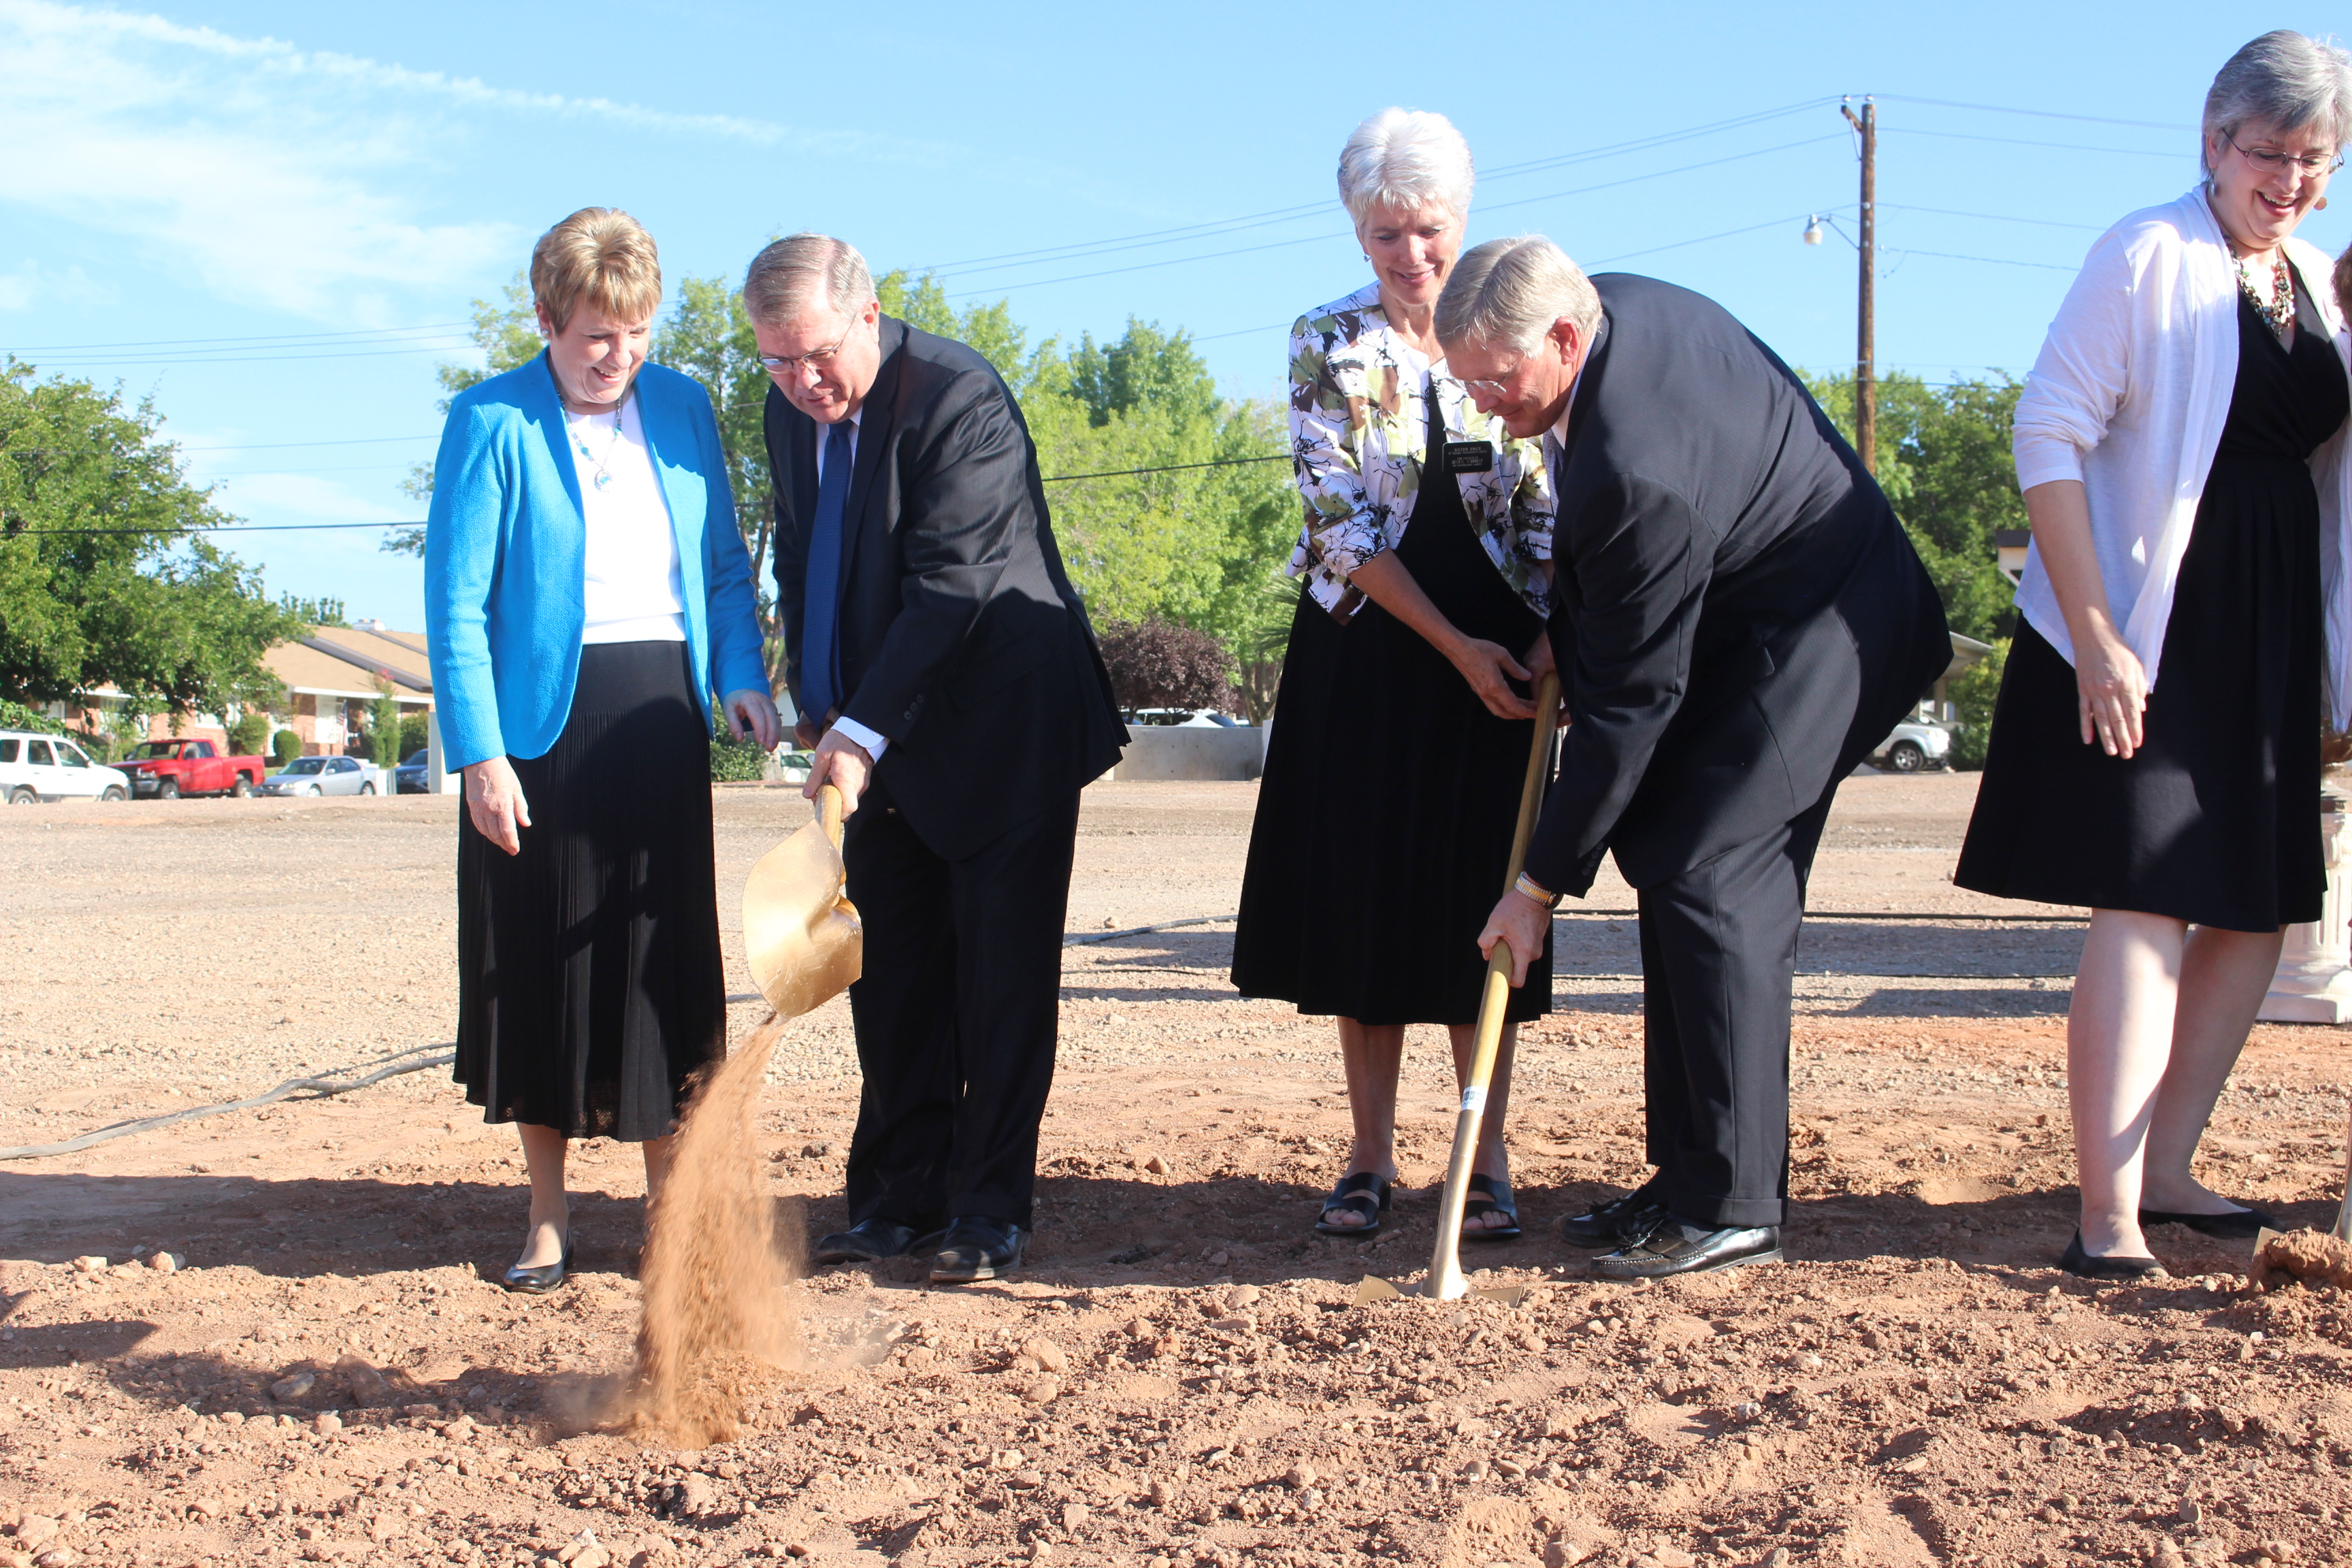 LDS Church Leaders Take Part In The Groundbreaking Ceremony For A New Family Research Center